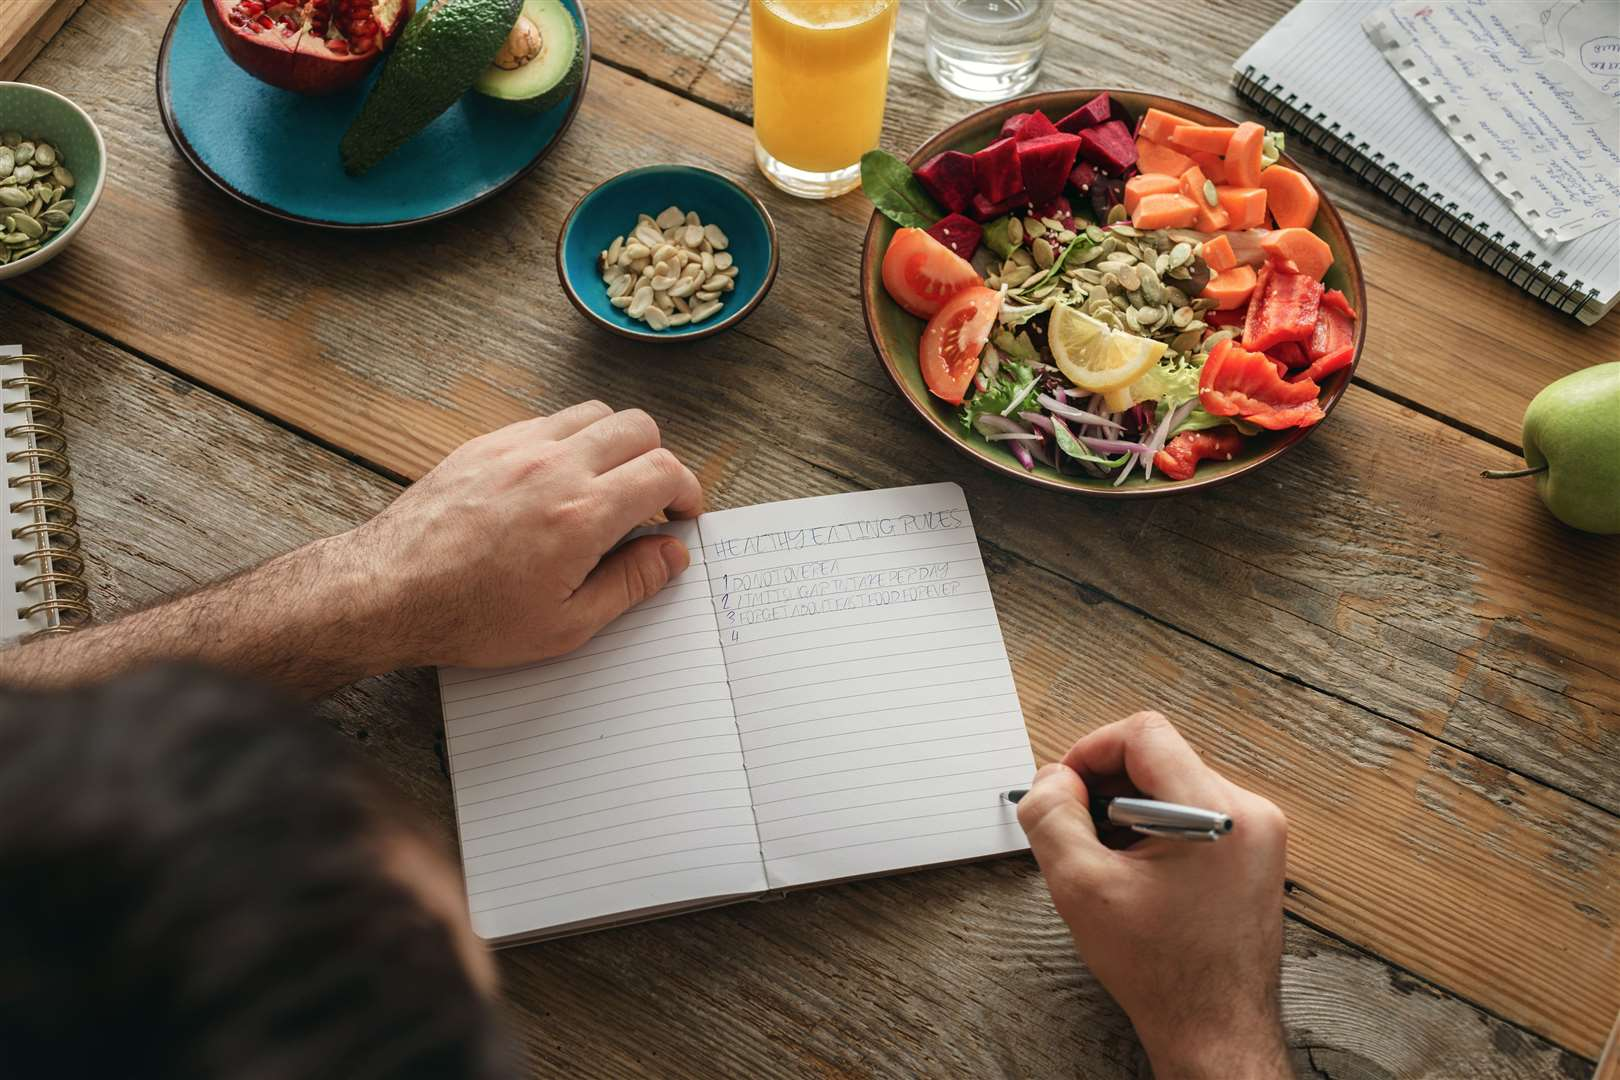 How to achieve good nutrition - write a food list(18507587)